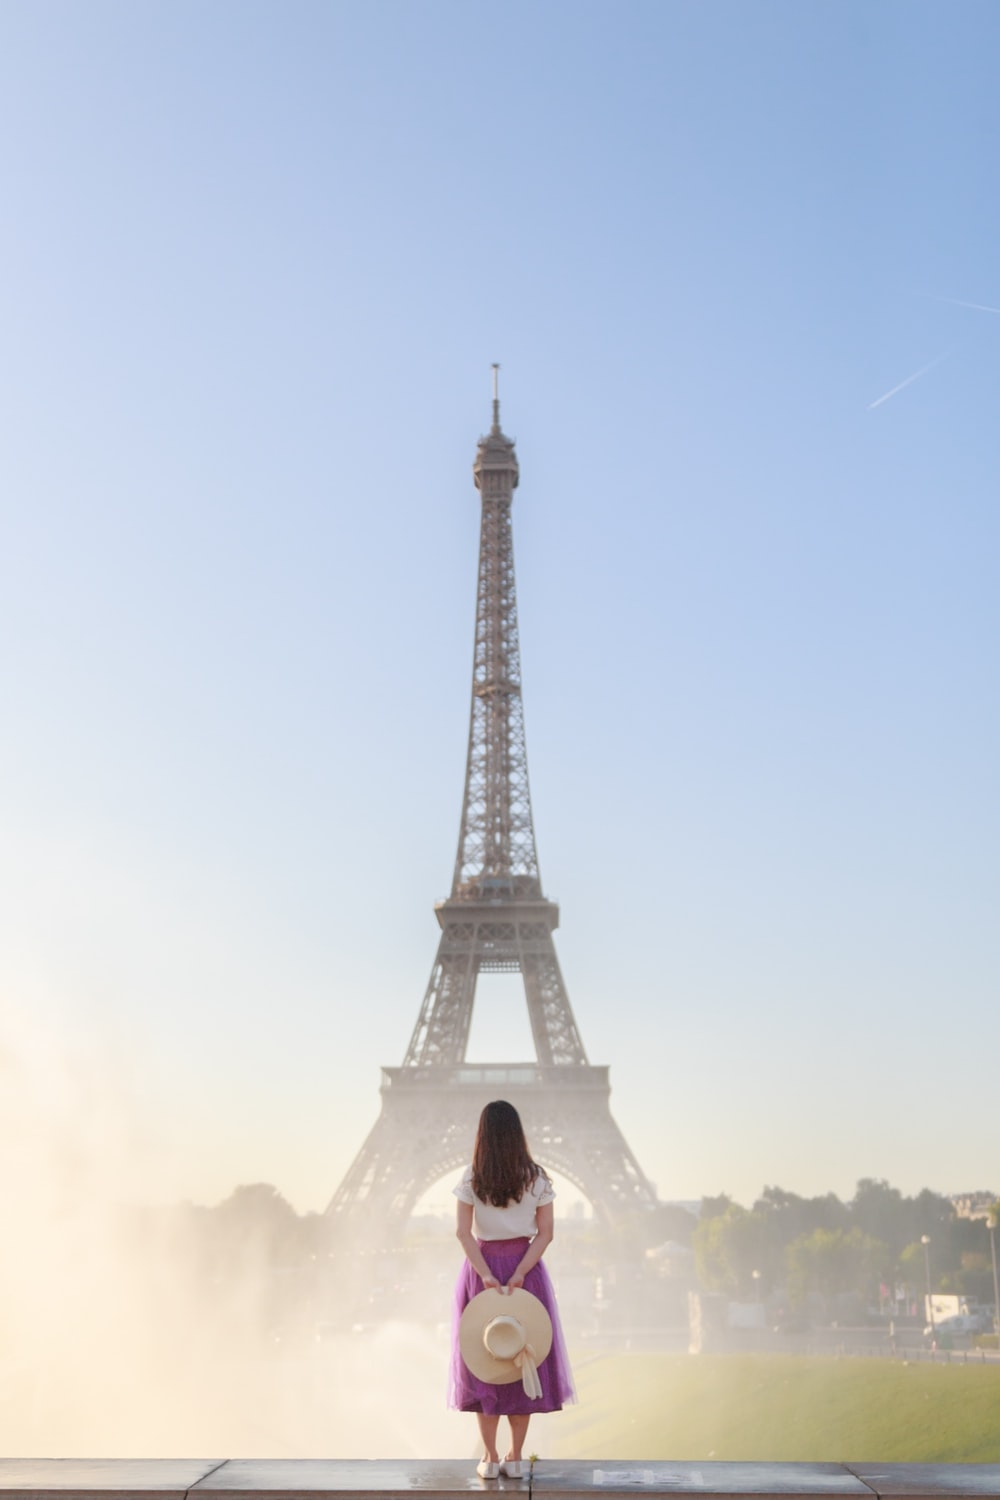 woman in white shirt sitting on the ground near eiffel tower during daytime